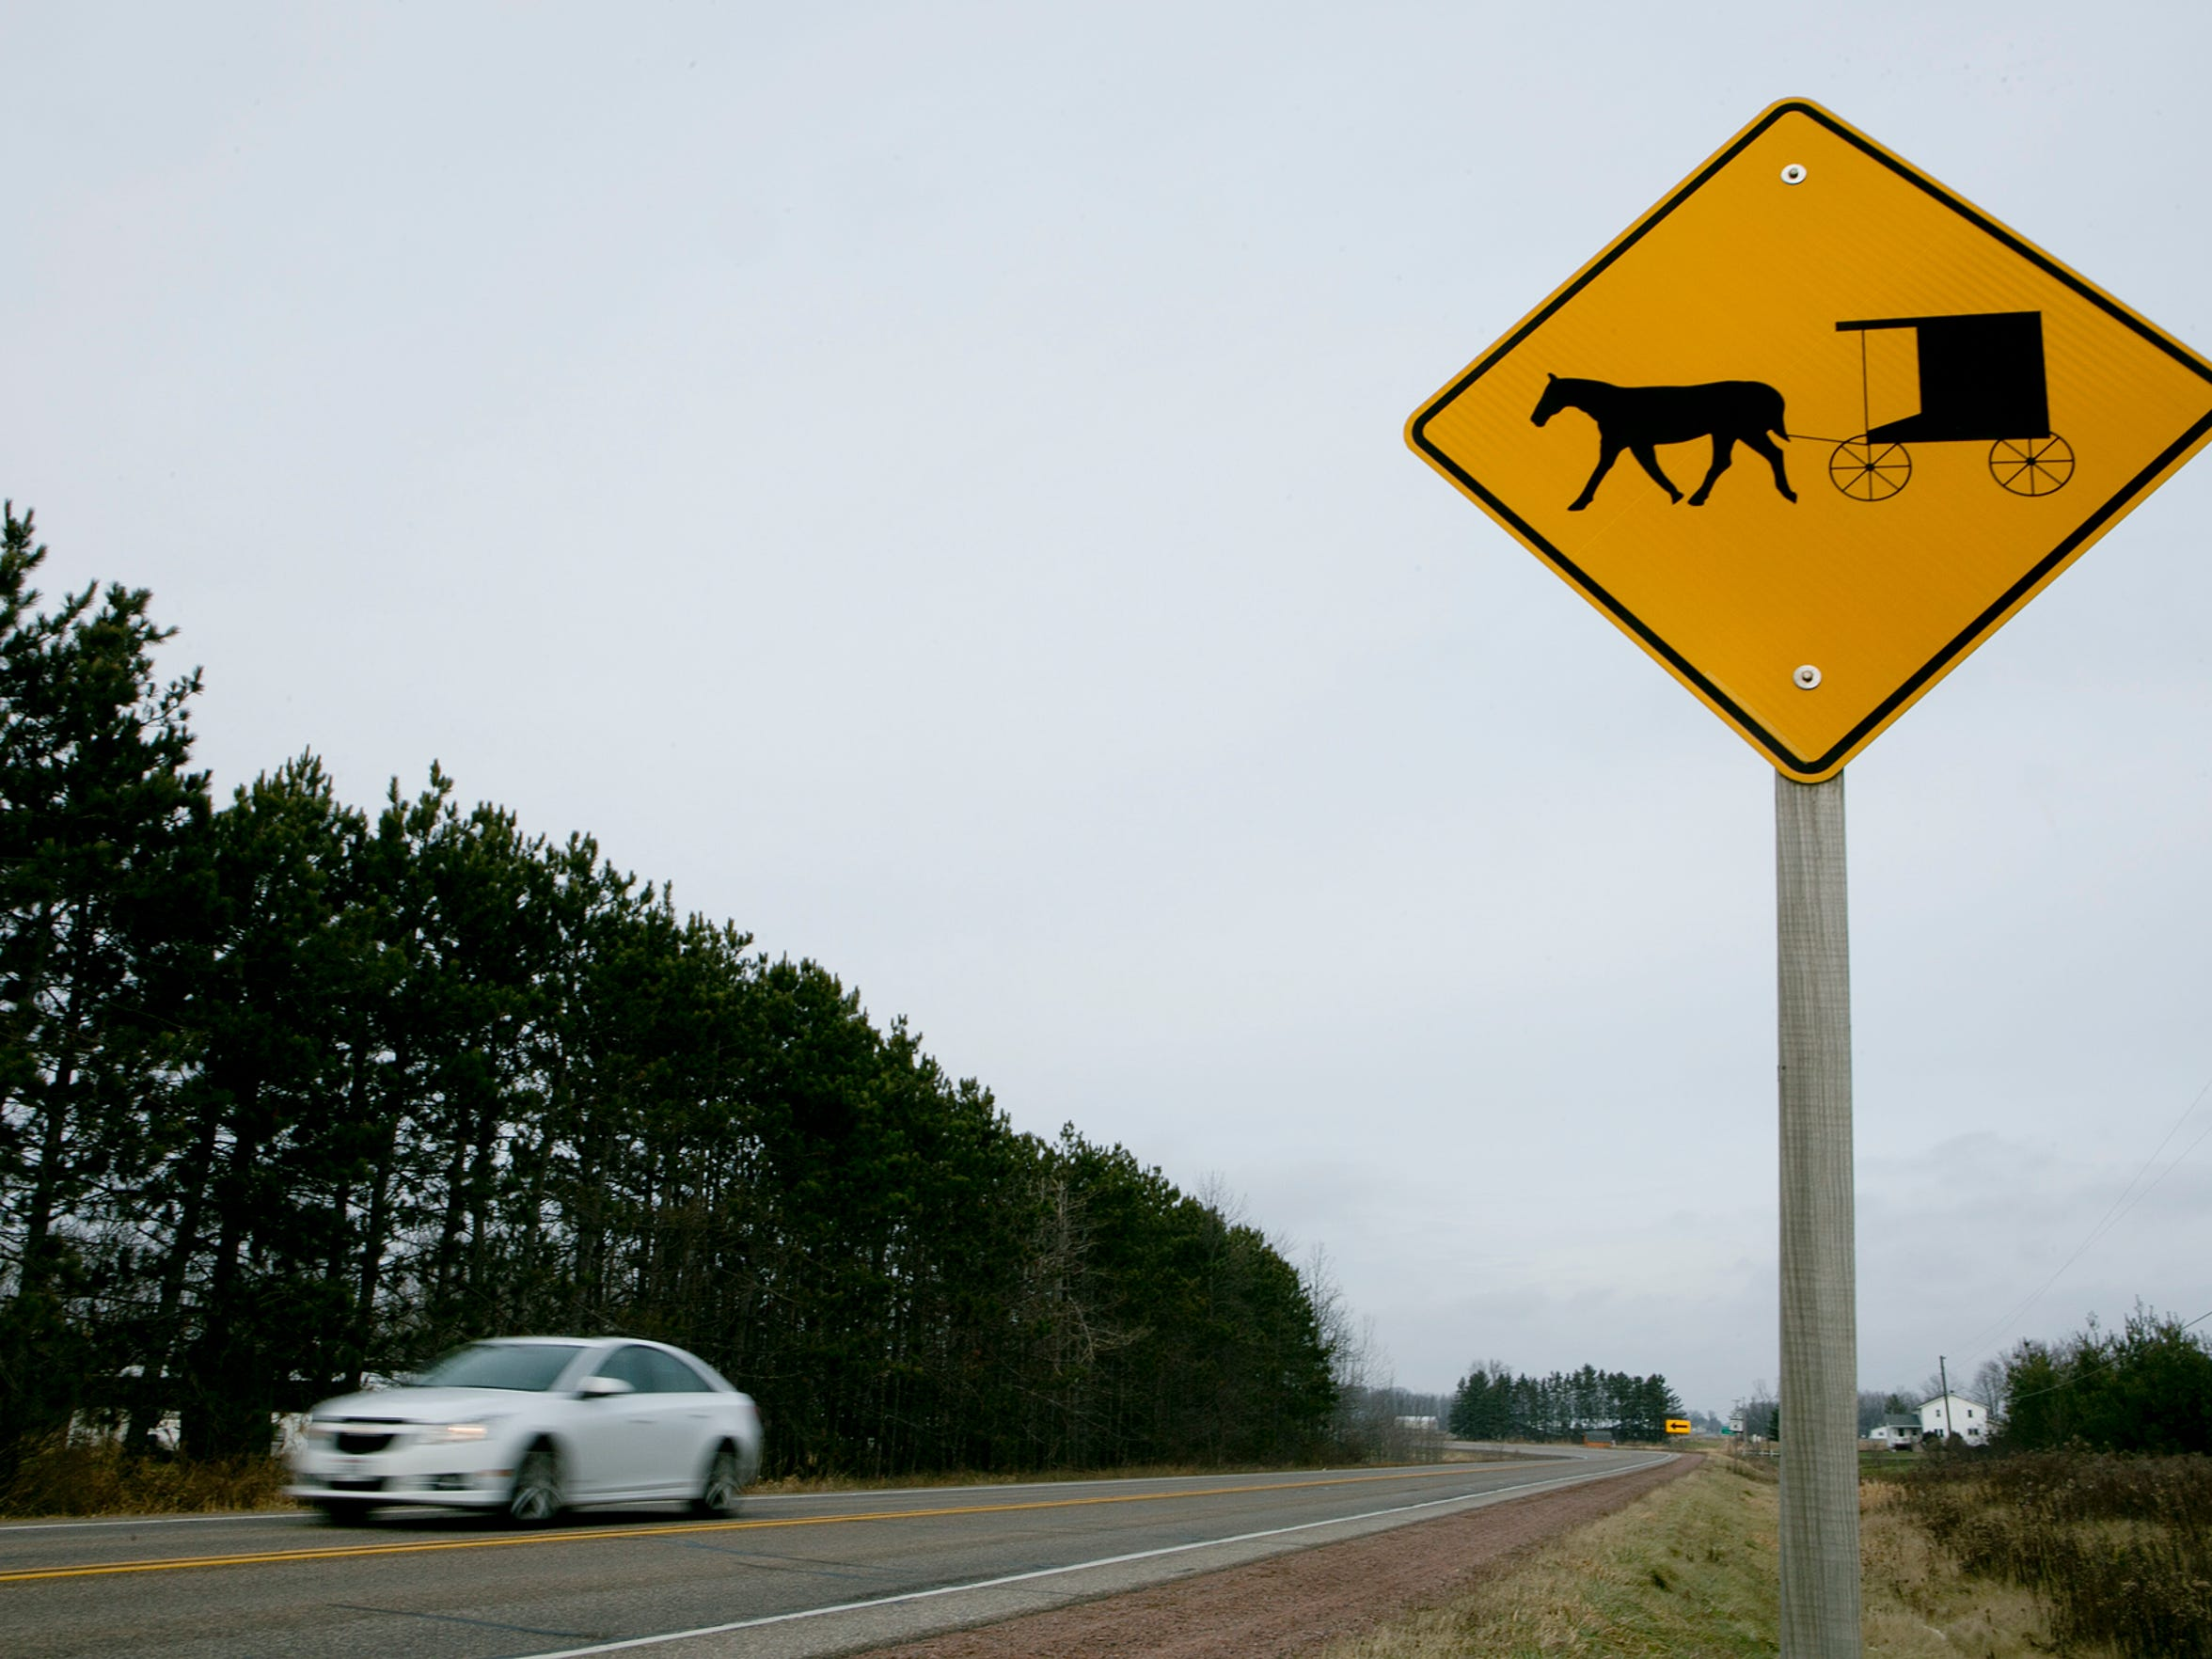 A horse and buggy warning sign is seen on Highway 186 in the town of Arpin, Tuesday, Dec. 8, 2015.